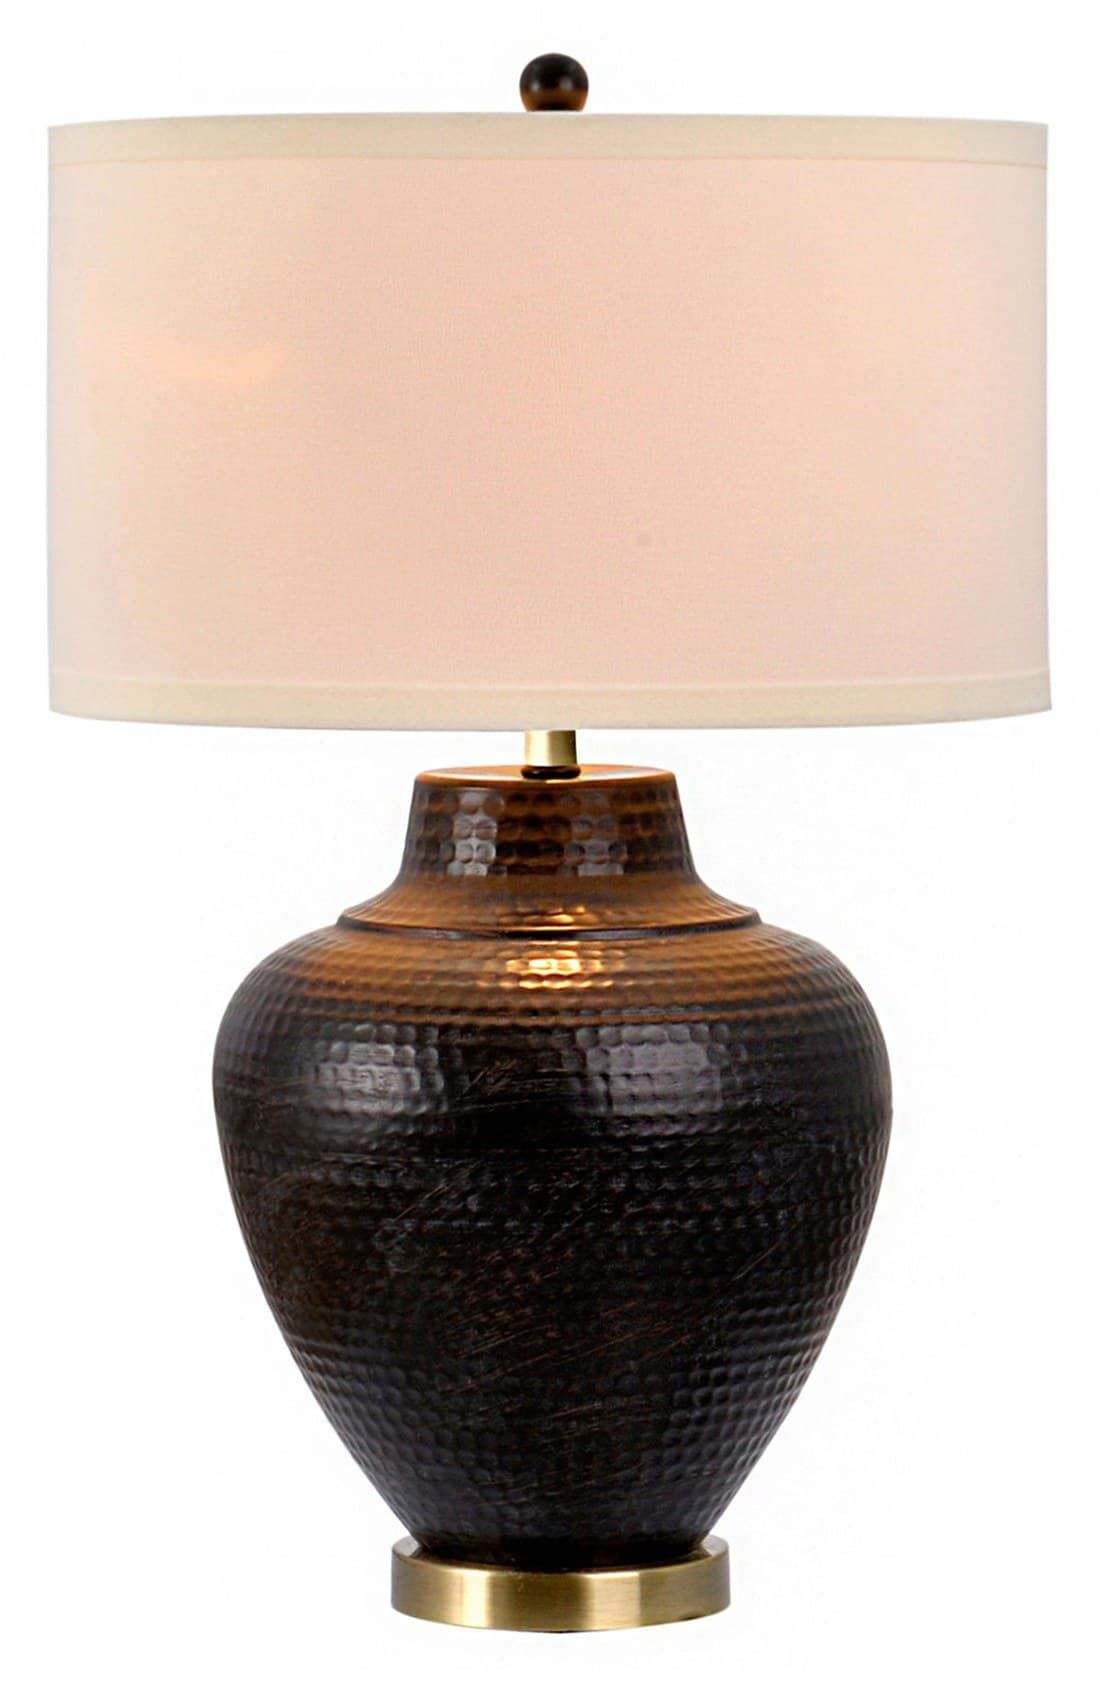 Jalexander Hammered Metal Table Lamp Size One Size Brown In 2020 Table Lamp Metal Table Lamps Lamp